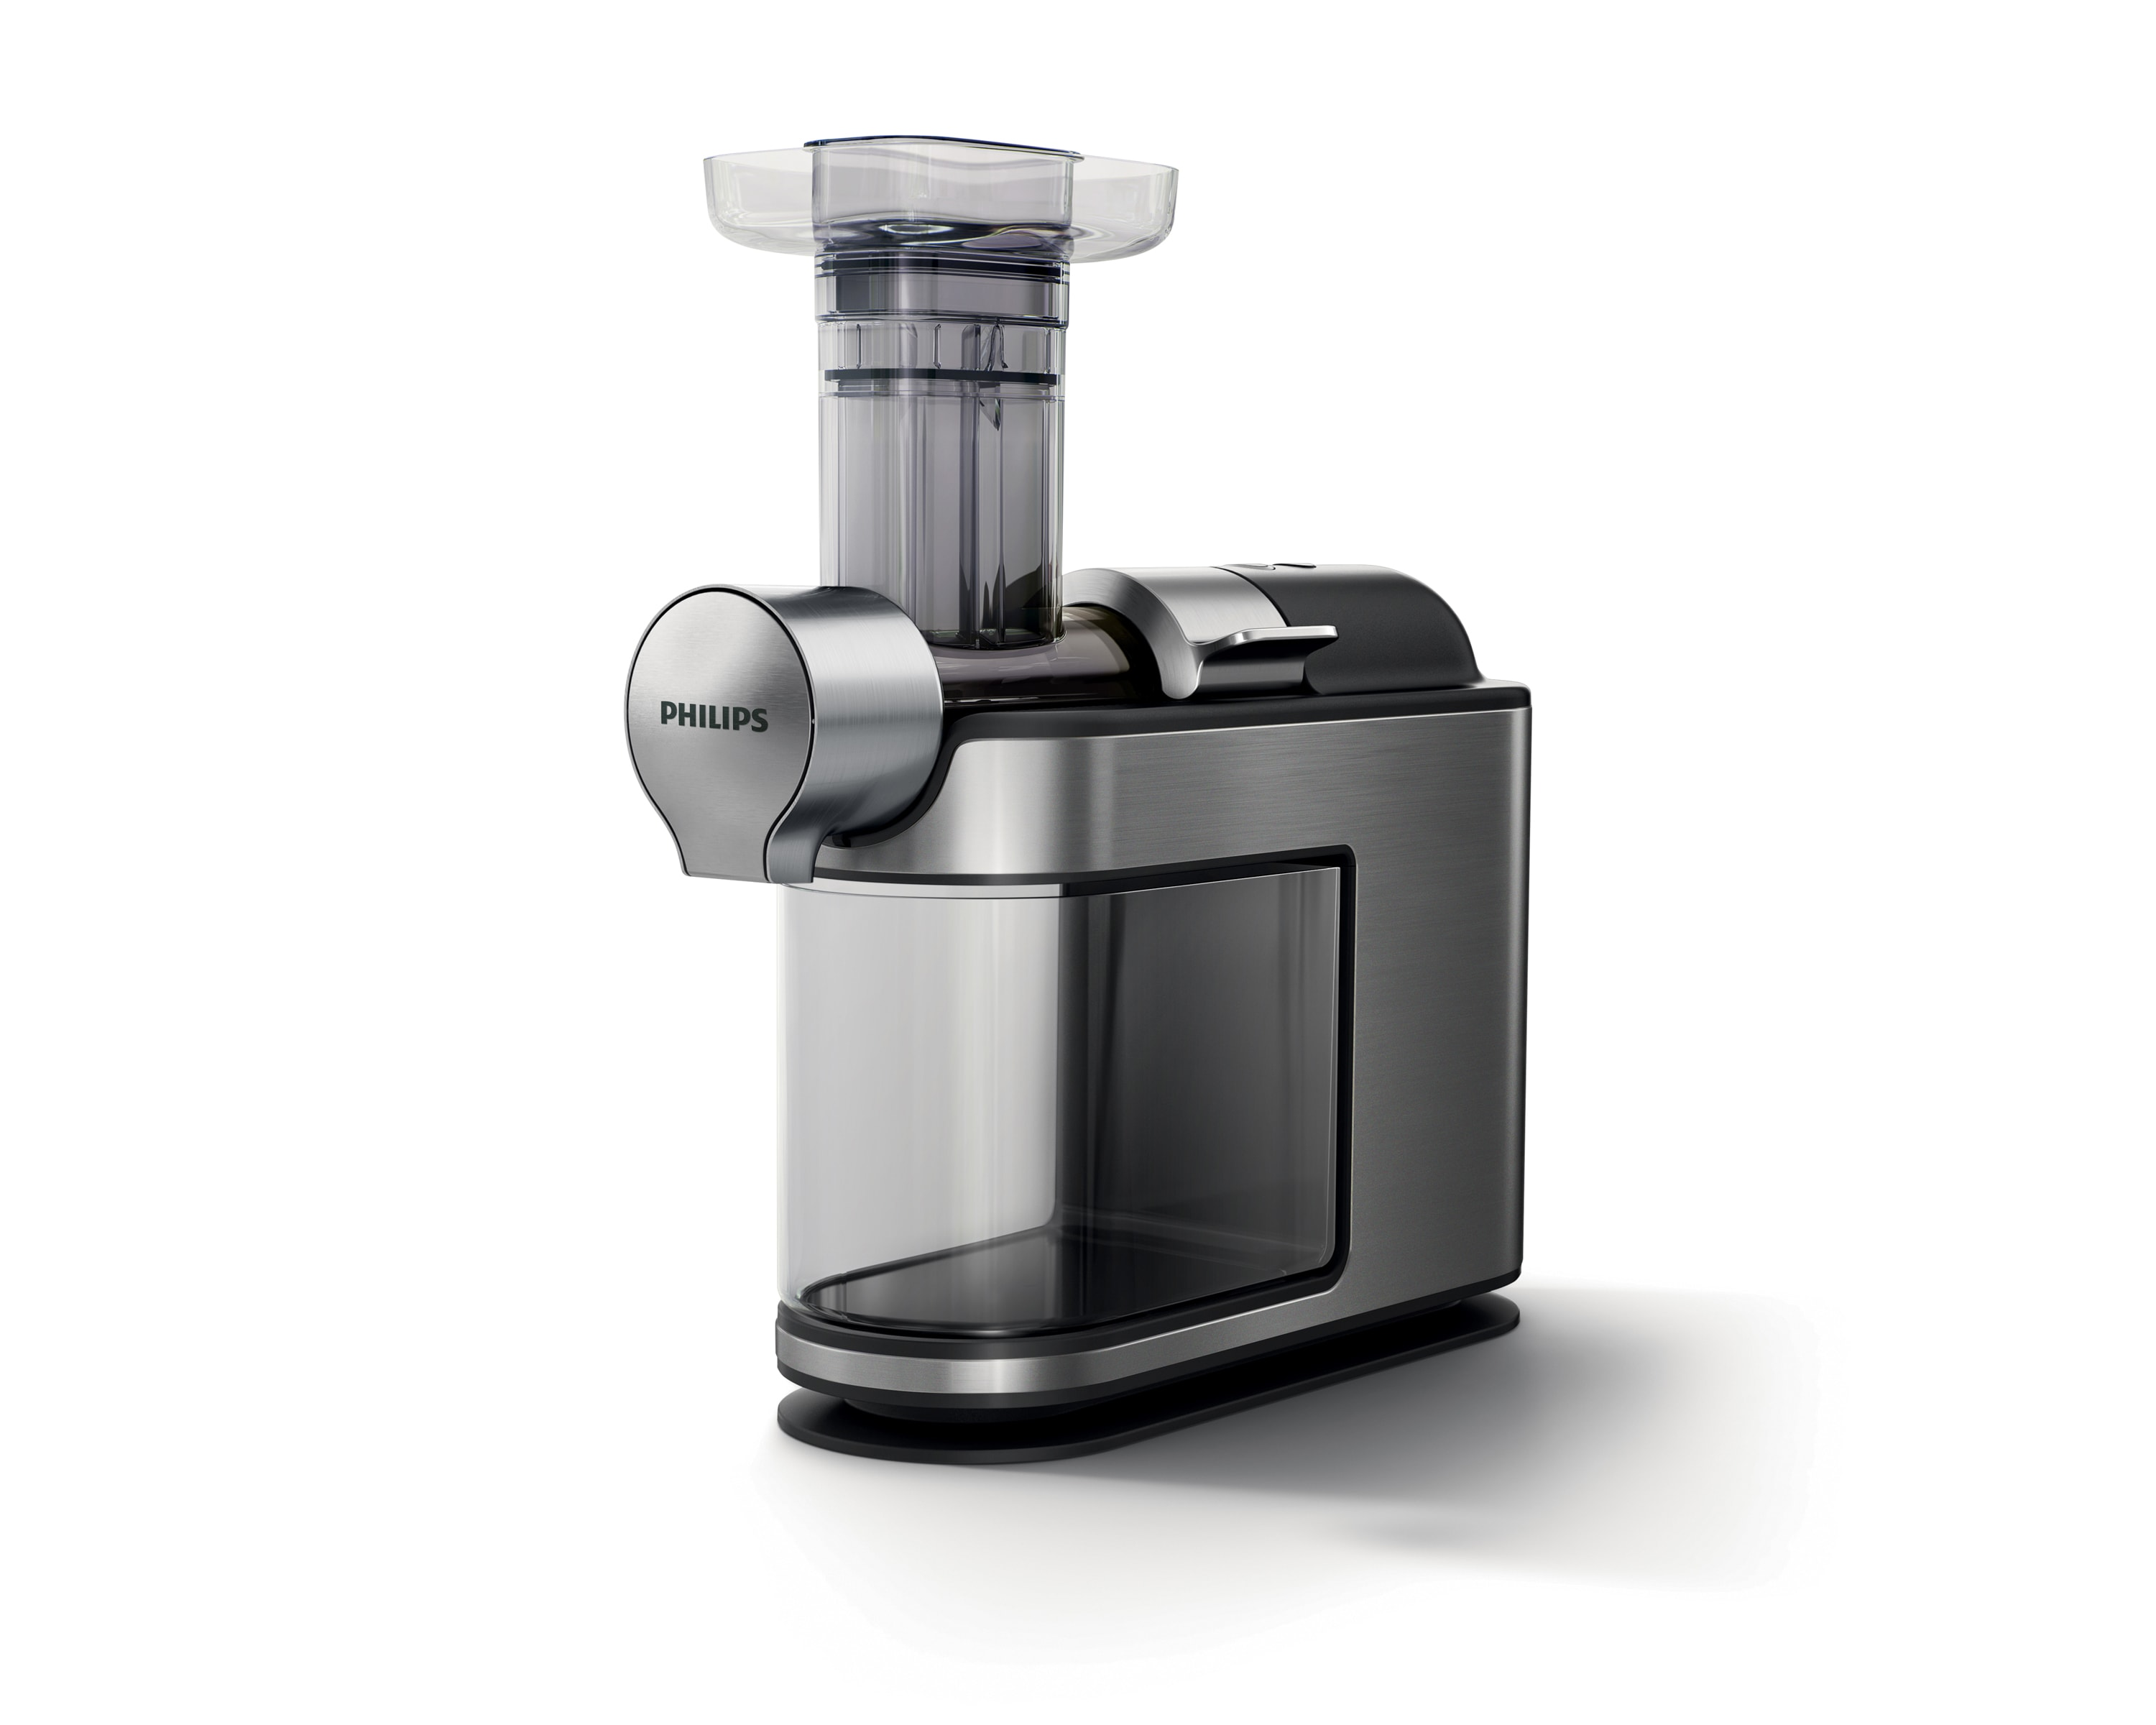 Philips Juicer Vs Slow Juicer : Philips Avance Slow Juicer - News center Philips